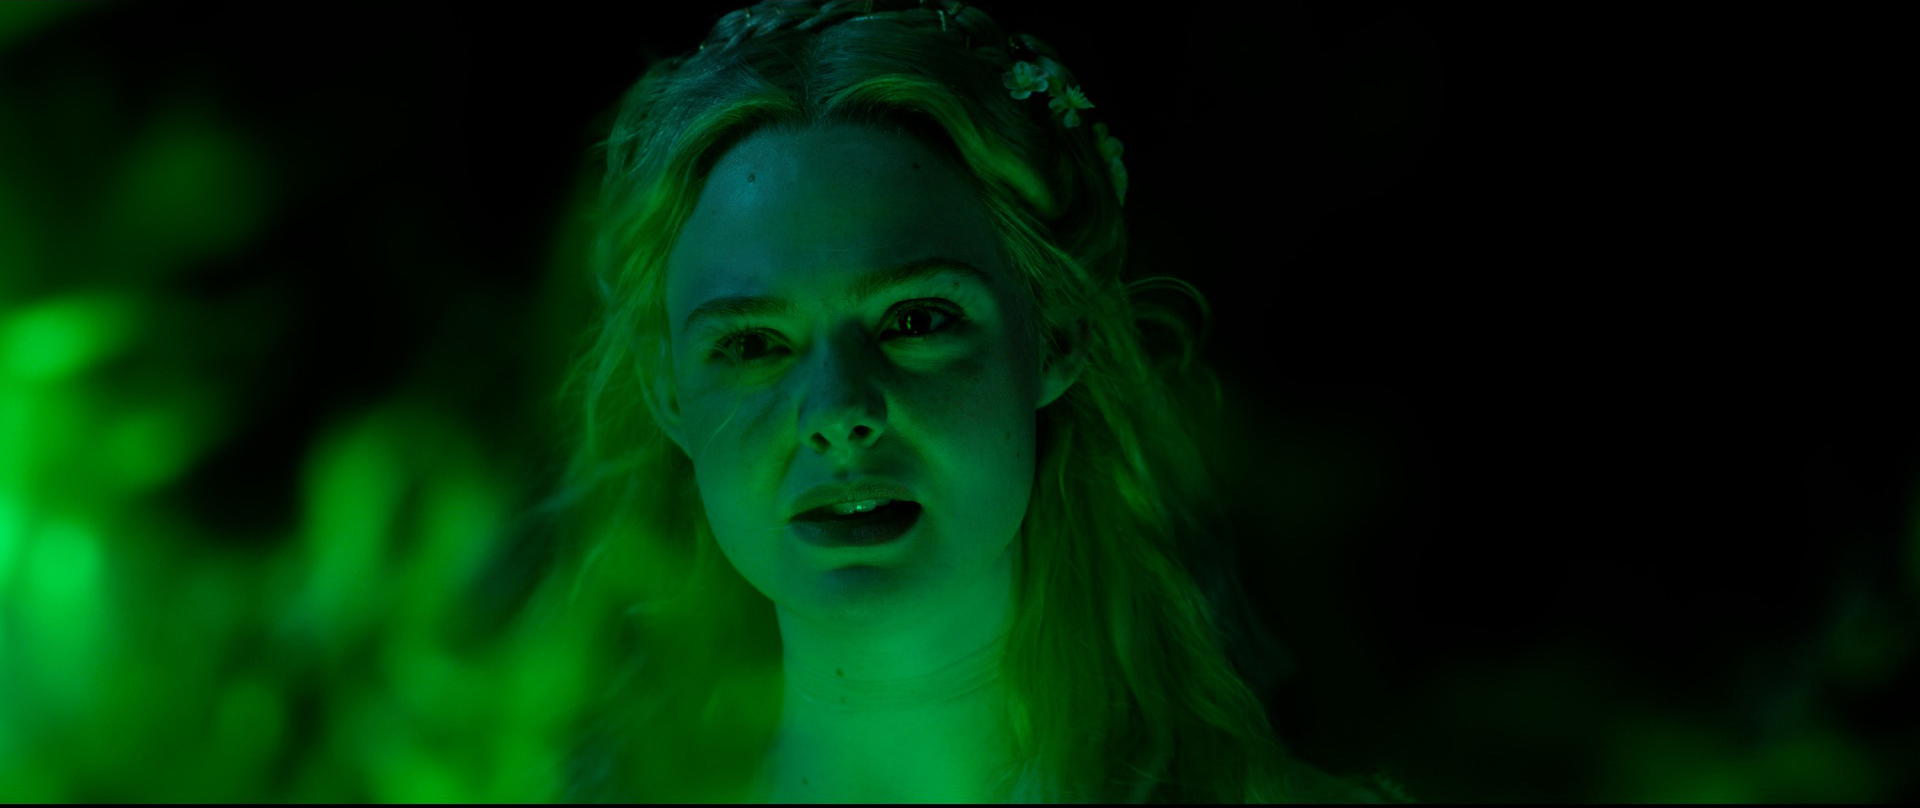 Maleficent 2 Signora del Male Elle Fanning